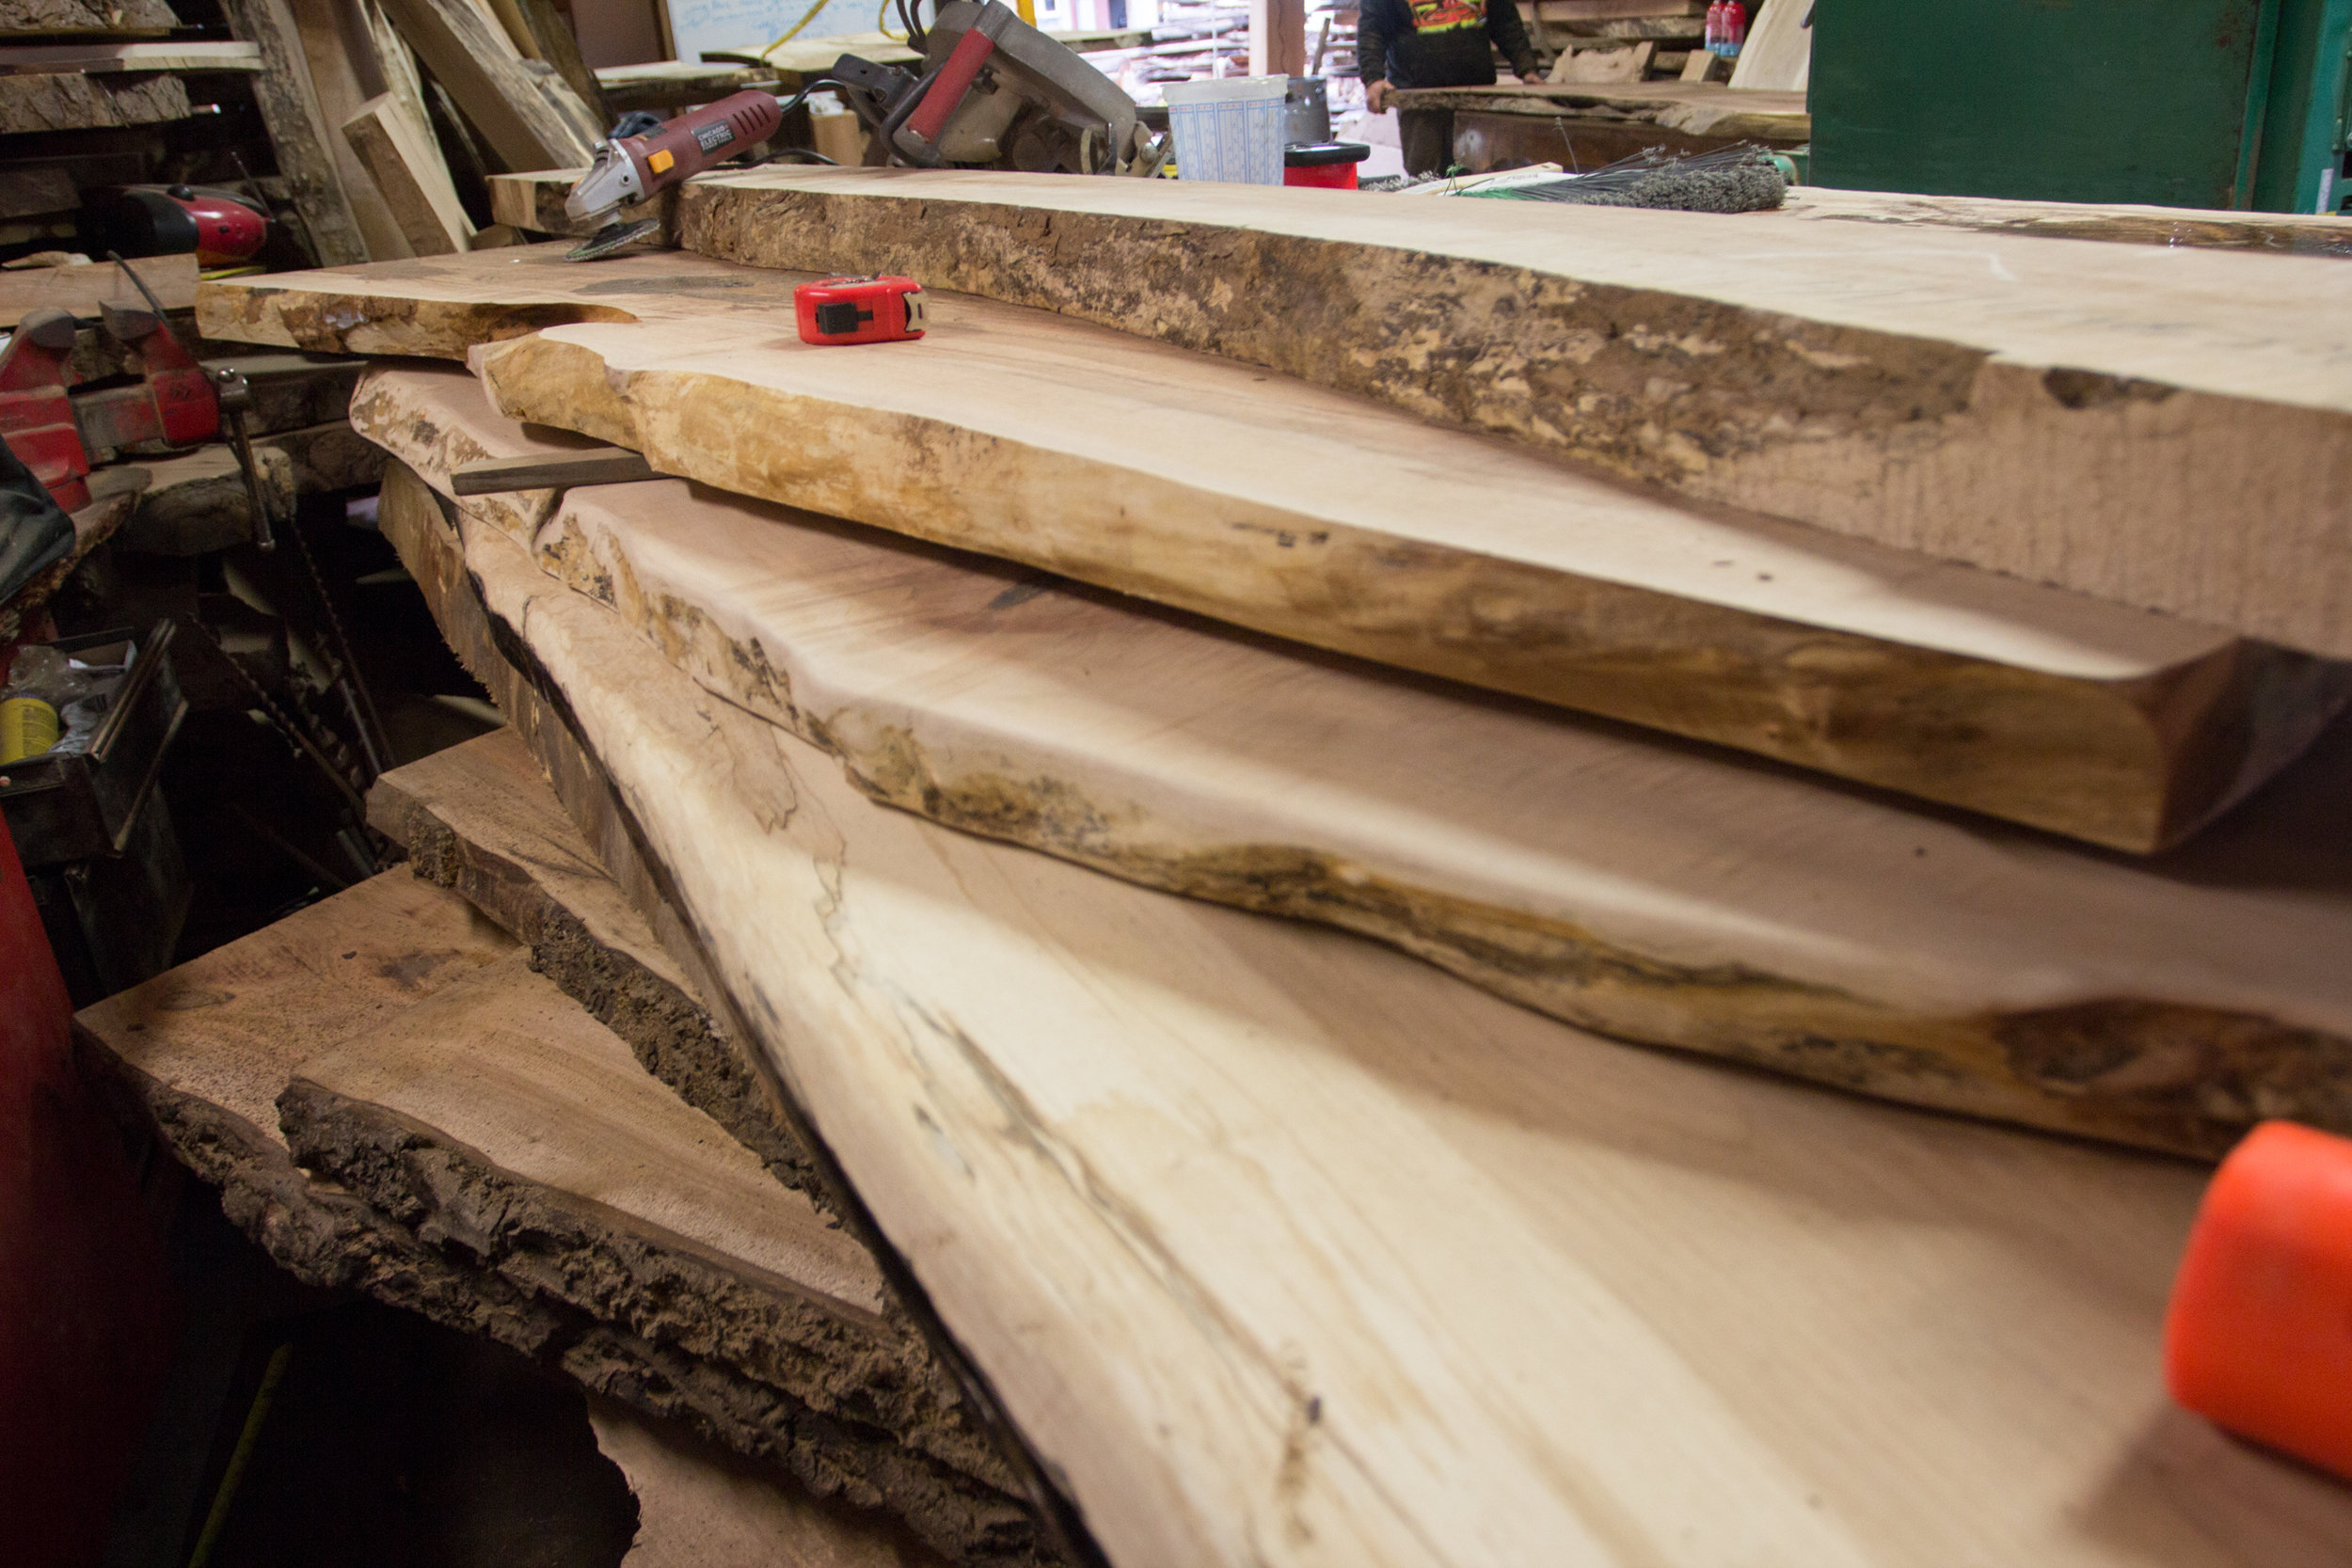 Nelson Treehouse and SUpply gets most of its slabs for treehouse built-ins from a small, family-owned wood mill in Oso, Wa. Read about the Wild Edge woods mill and its  owner, Bruce, on our blog here.